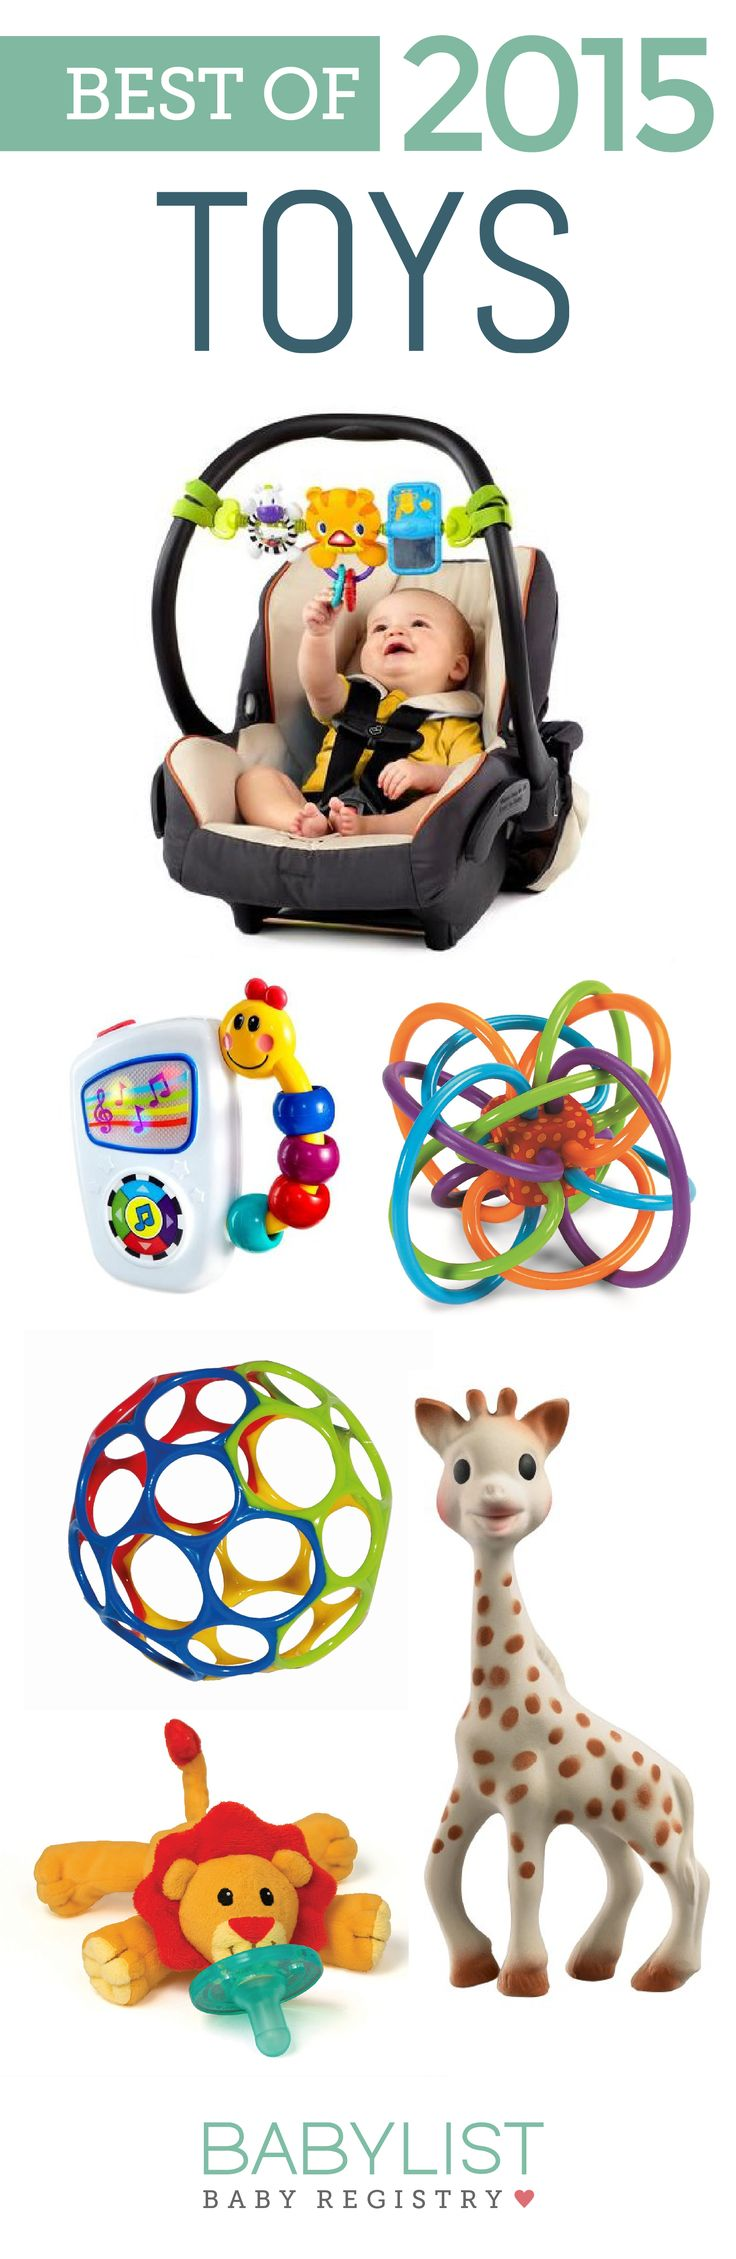 When trying to distract a fussy baby, the perfect toy can really come in handy. Fun and useful, here are our favorite toys of 2015!